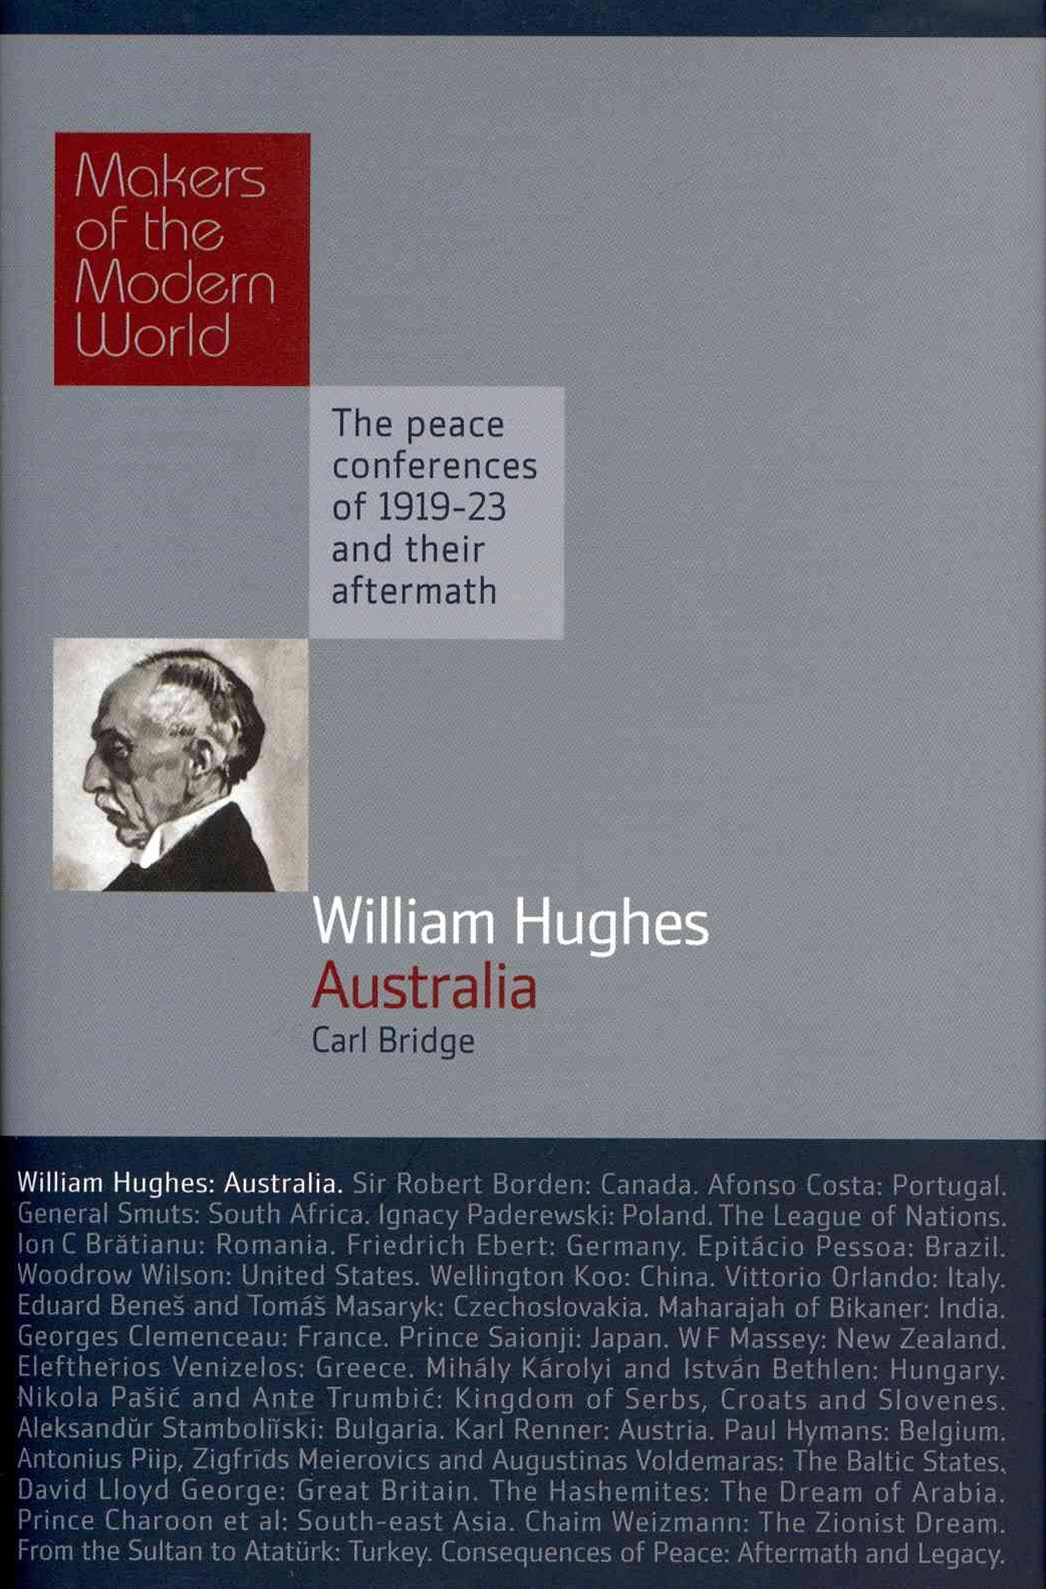 William Hughes: Australia